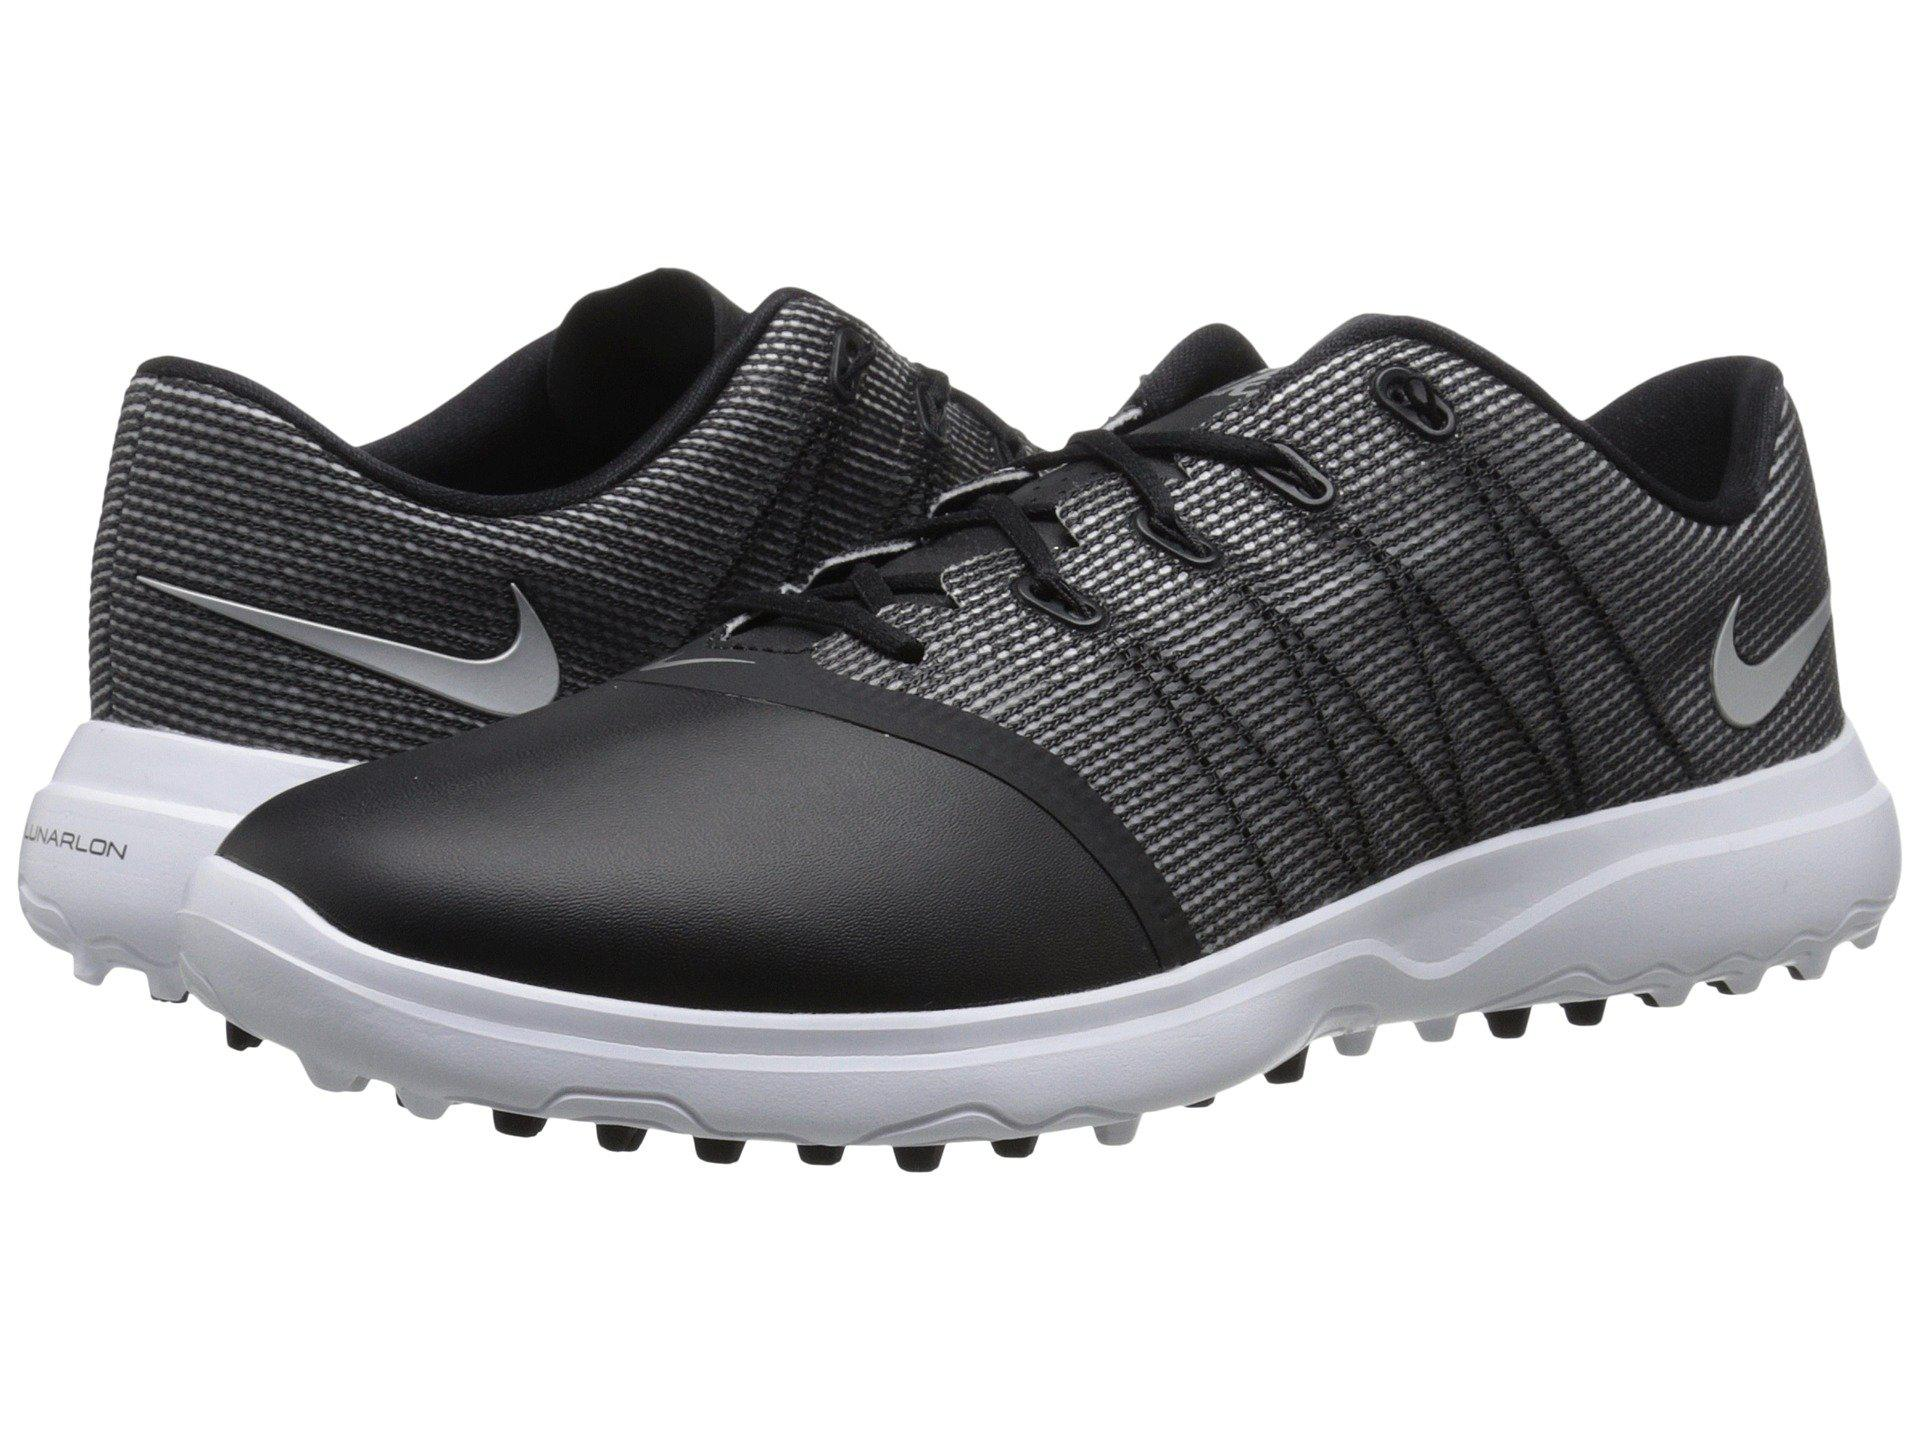 new arrival d4528 8c127 Nike. Black Lunar Empress 2 (white anthracite cool Grey) Women s Golf Shoes